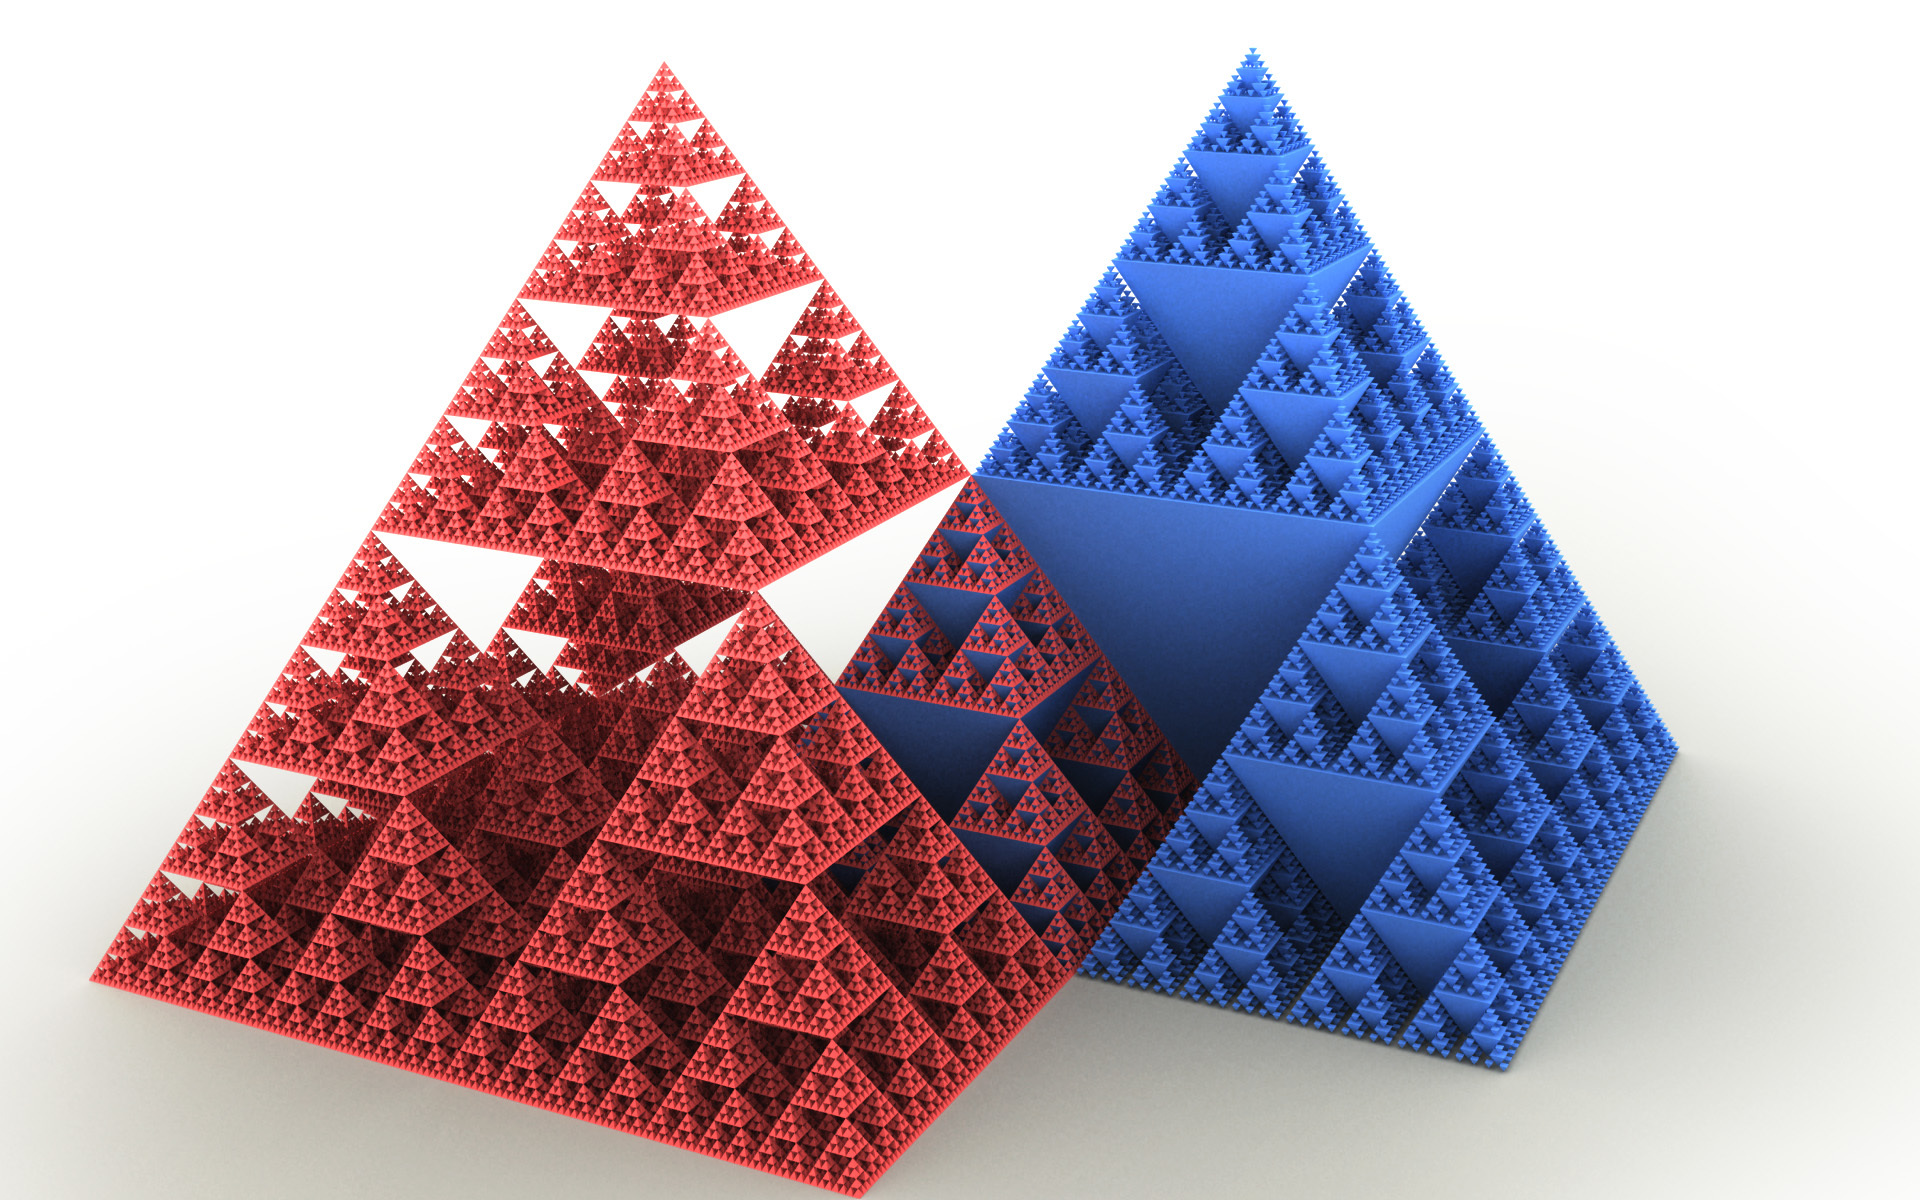 Fractals mathematics pyramids sponge HD Wallpaper